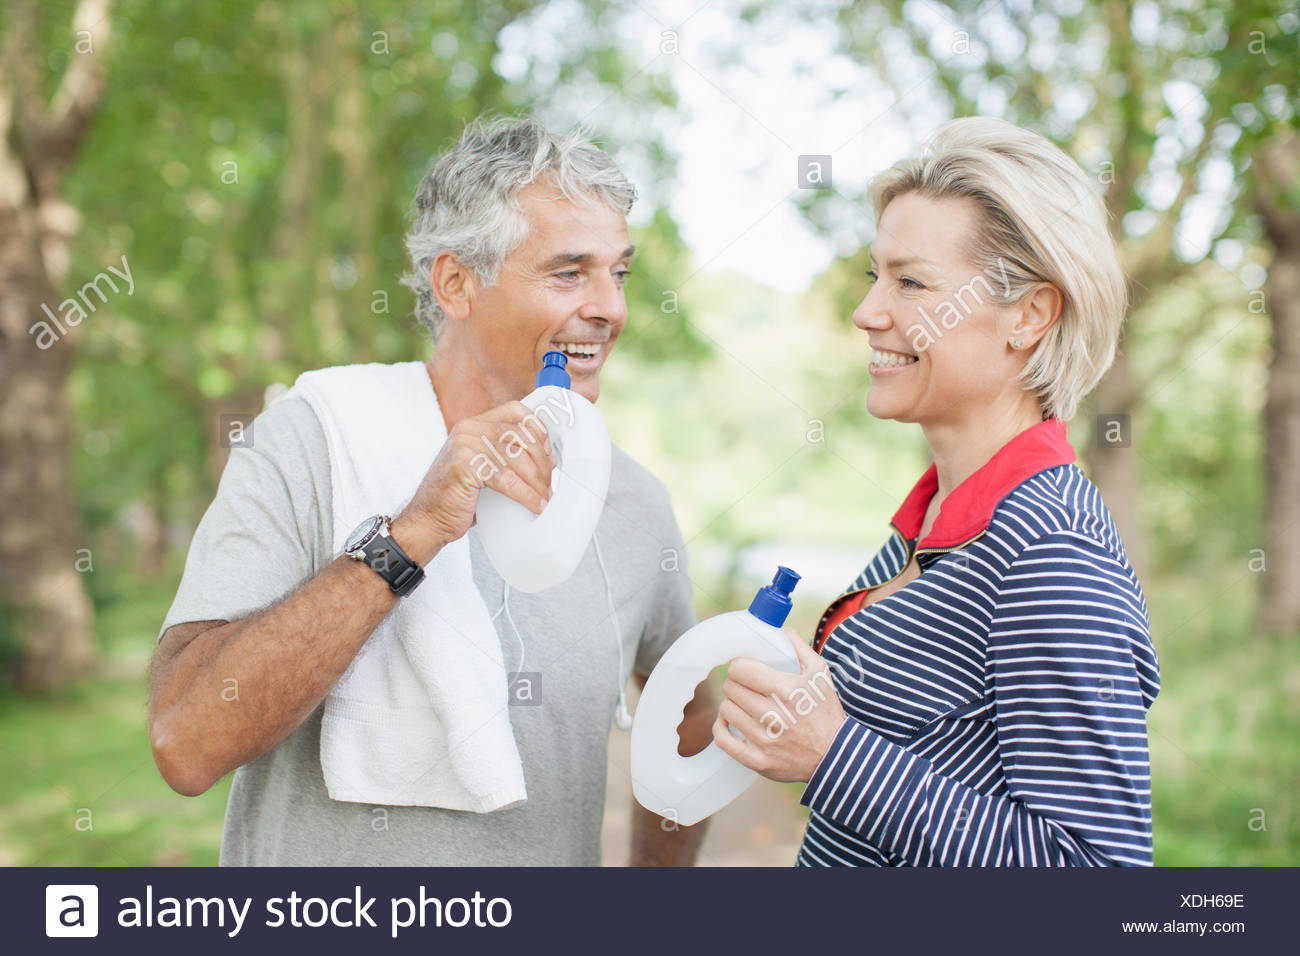 Smiling couple holding water bottles - Stock Image